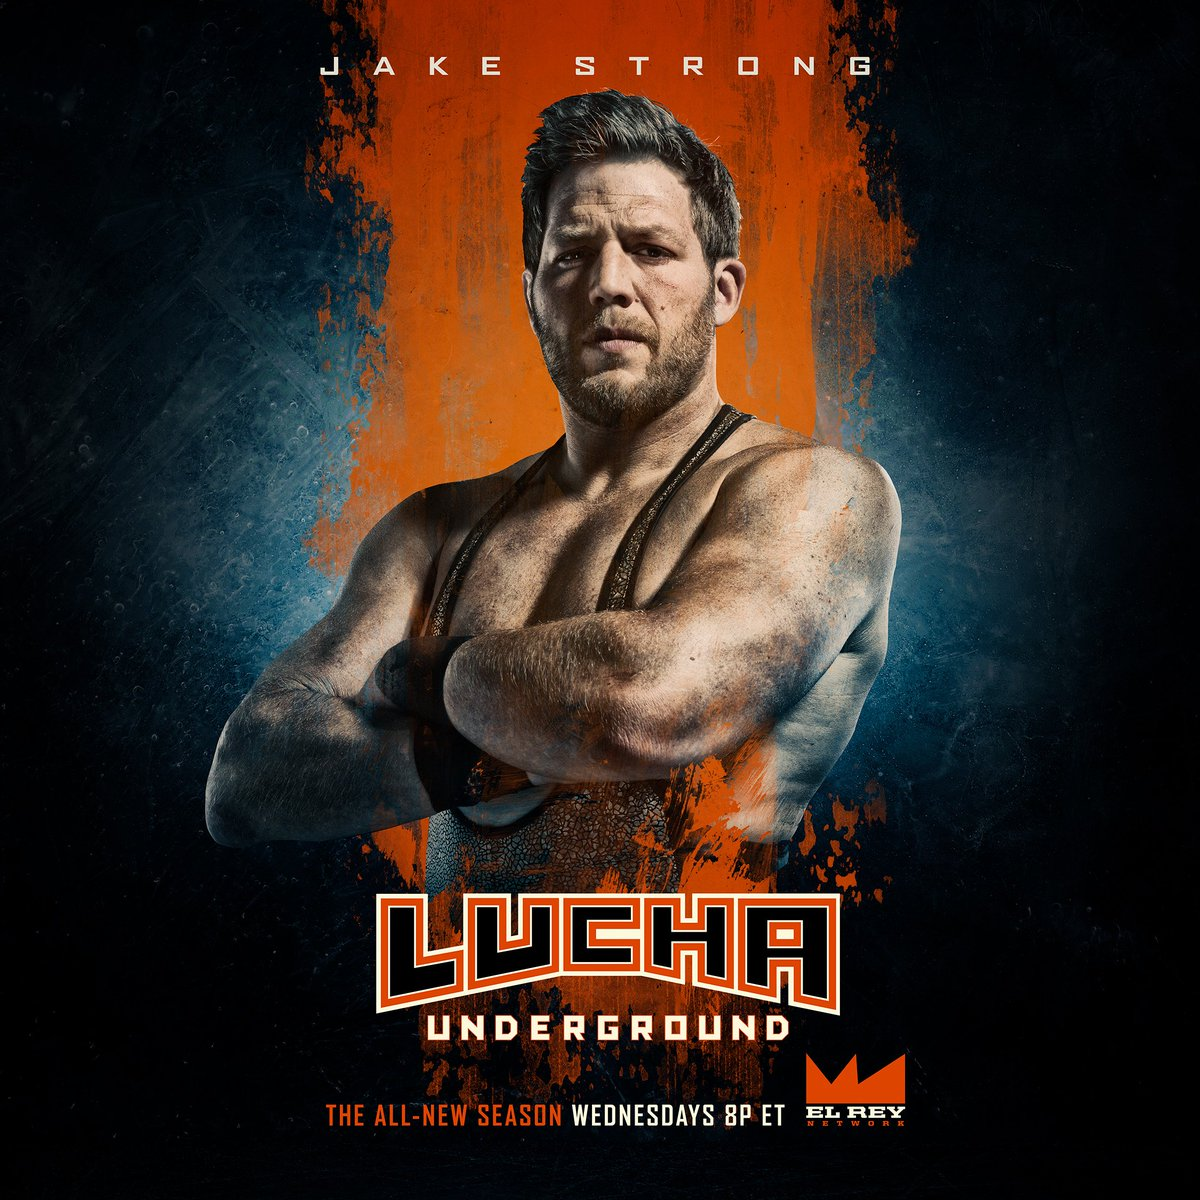 A Lucha Underground poster. The background consists of grungy textures and shades of orange and blue. Jake Strong, a fair haired white man, is centered. He has his arms crossed and sports an intimidating glare.